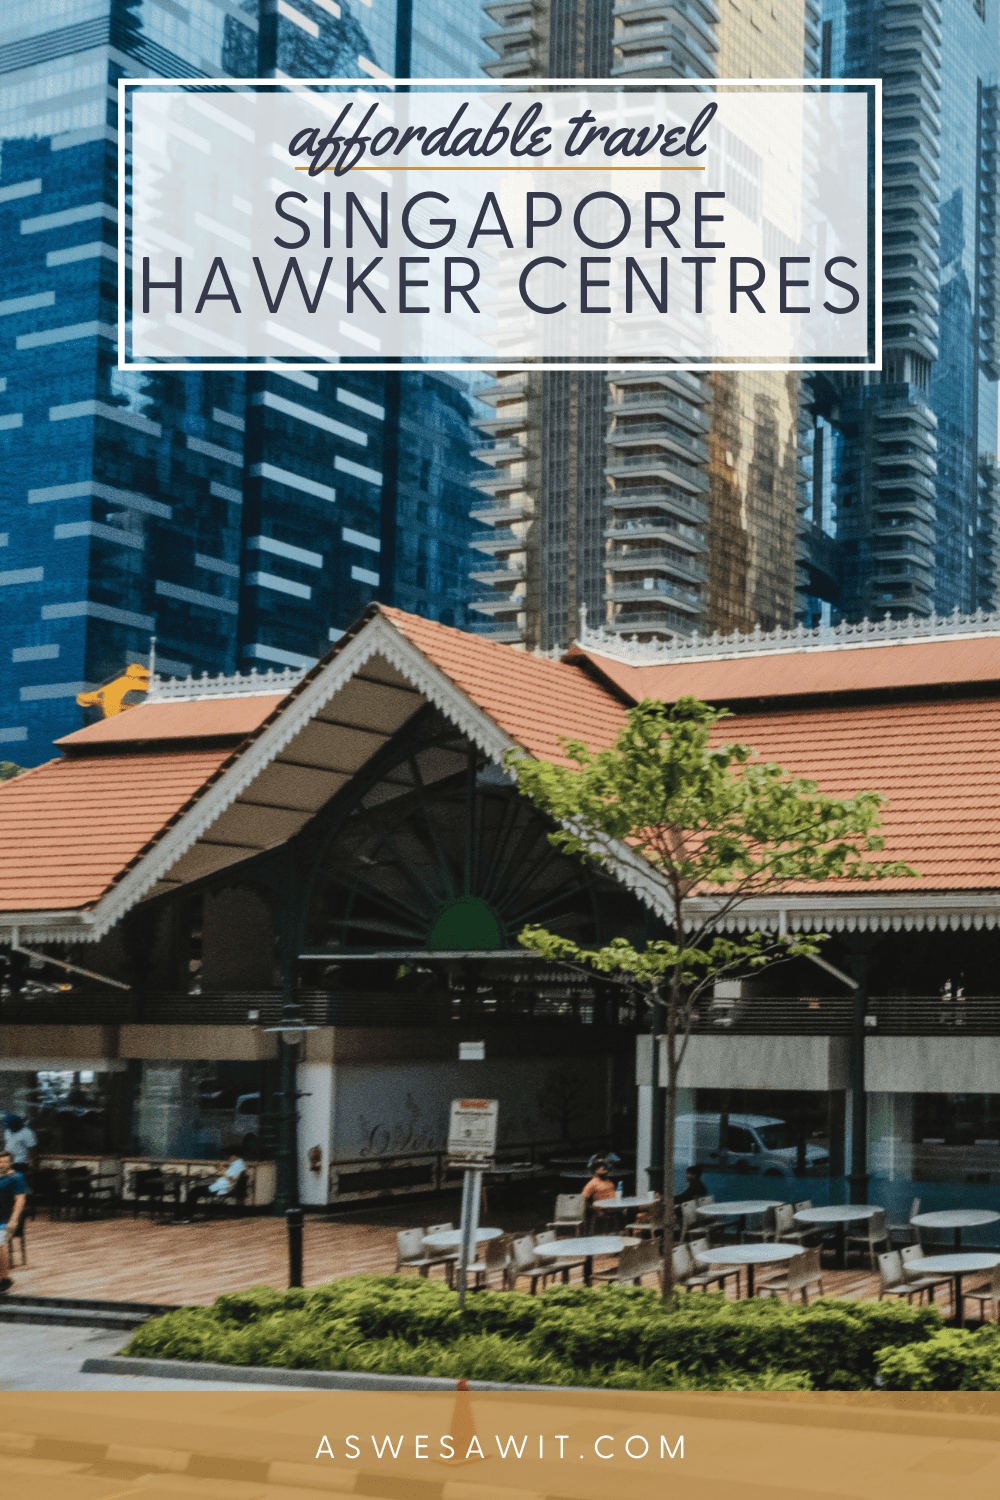 """Entrance to Lau Pa Sat hawker centre.Text overlay says """"affordable travel Singapore Hawker Centres as we saw it dot com."""""""